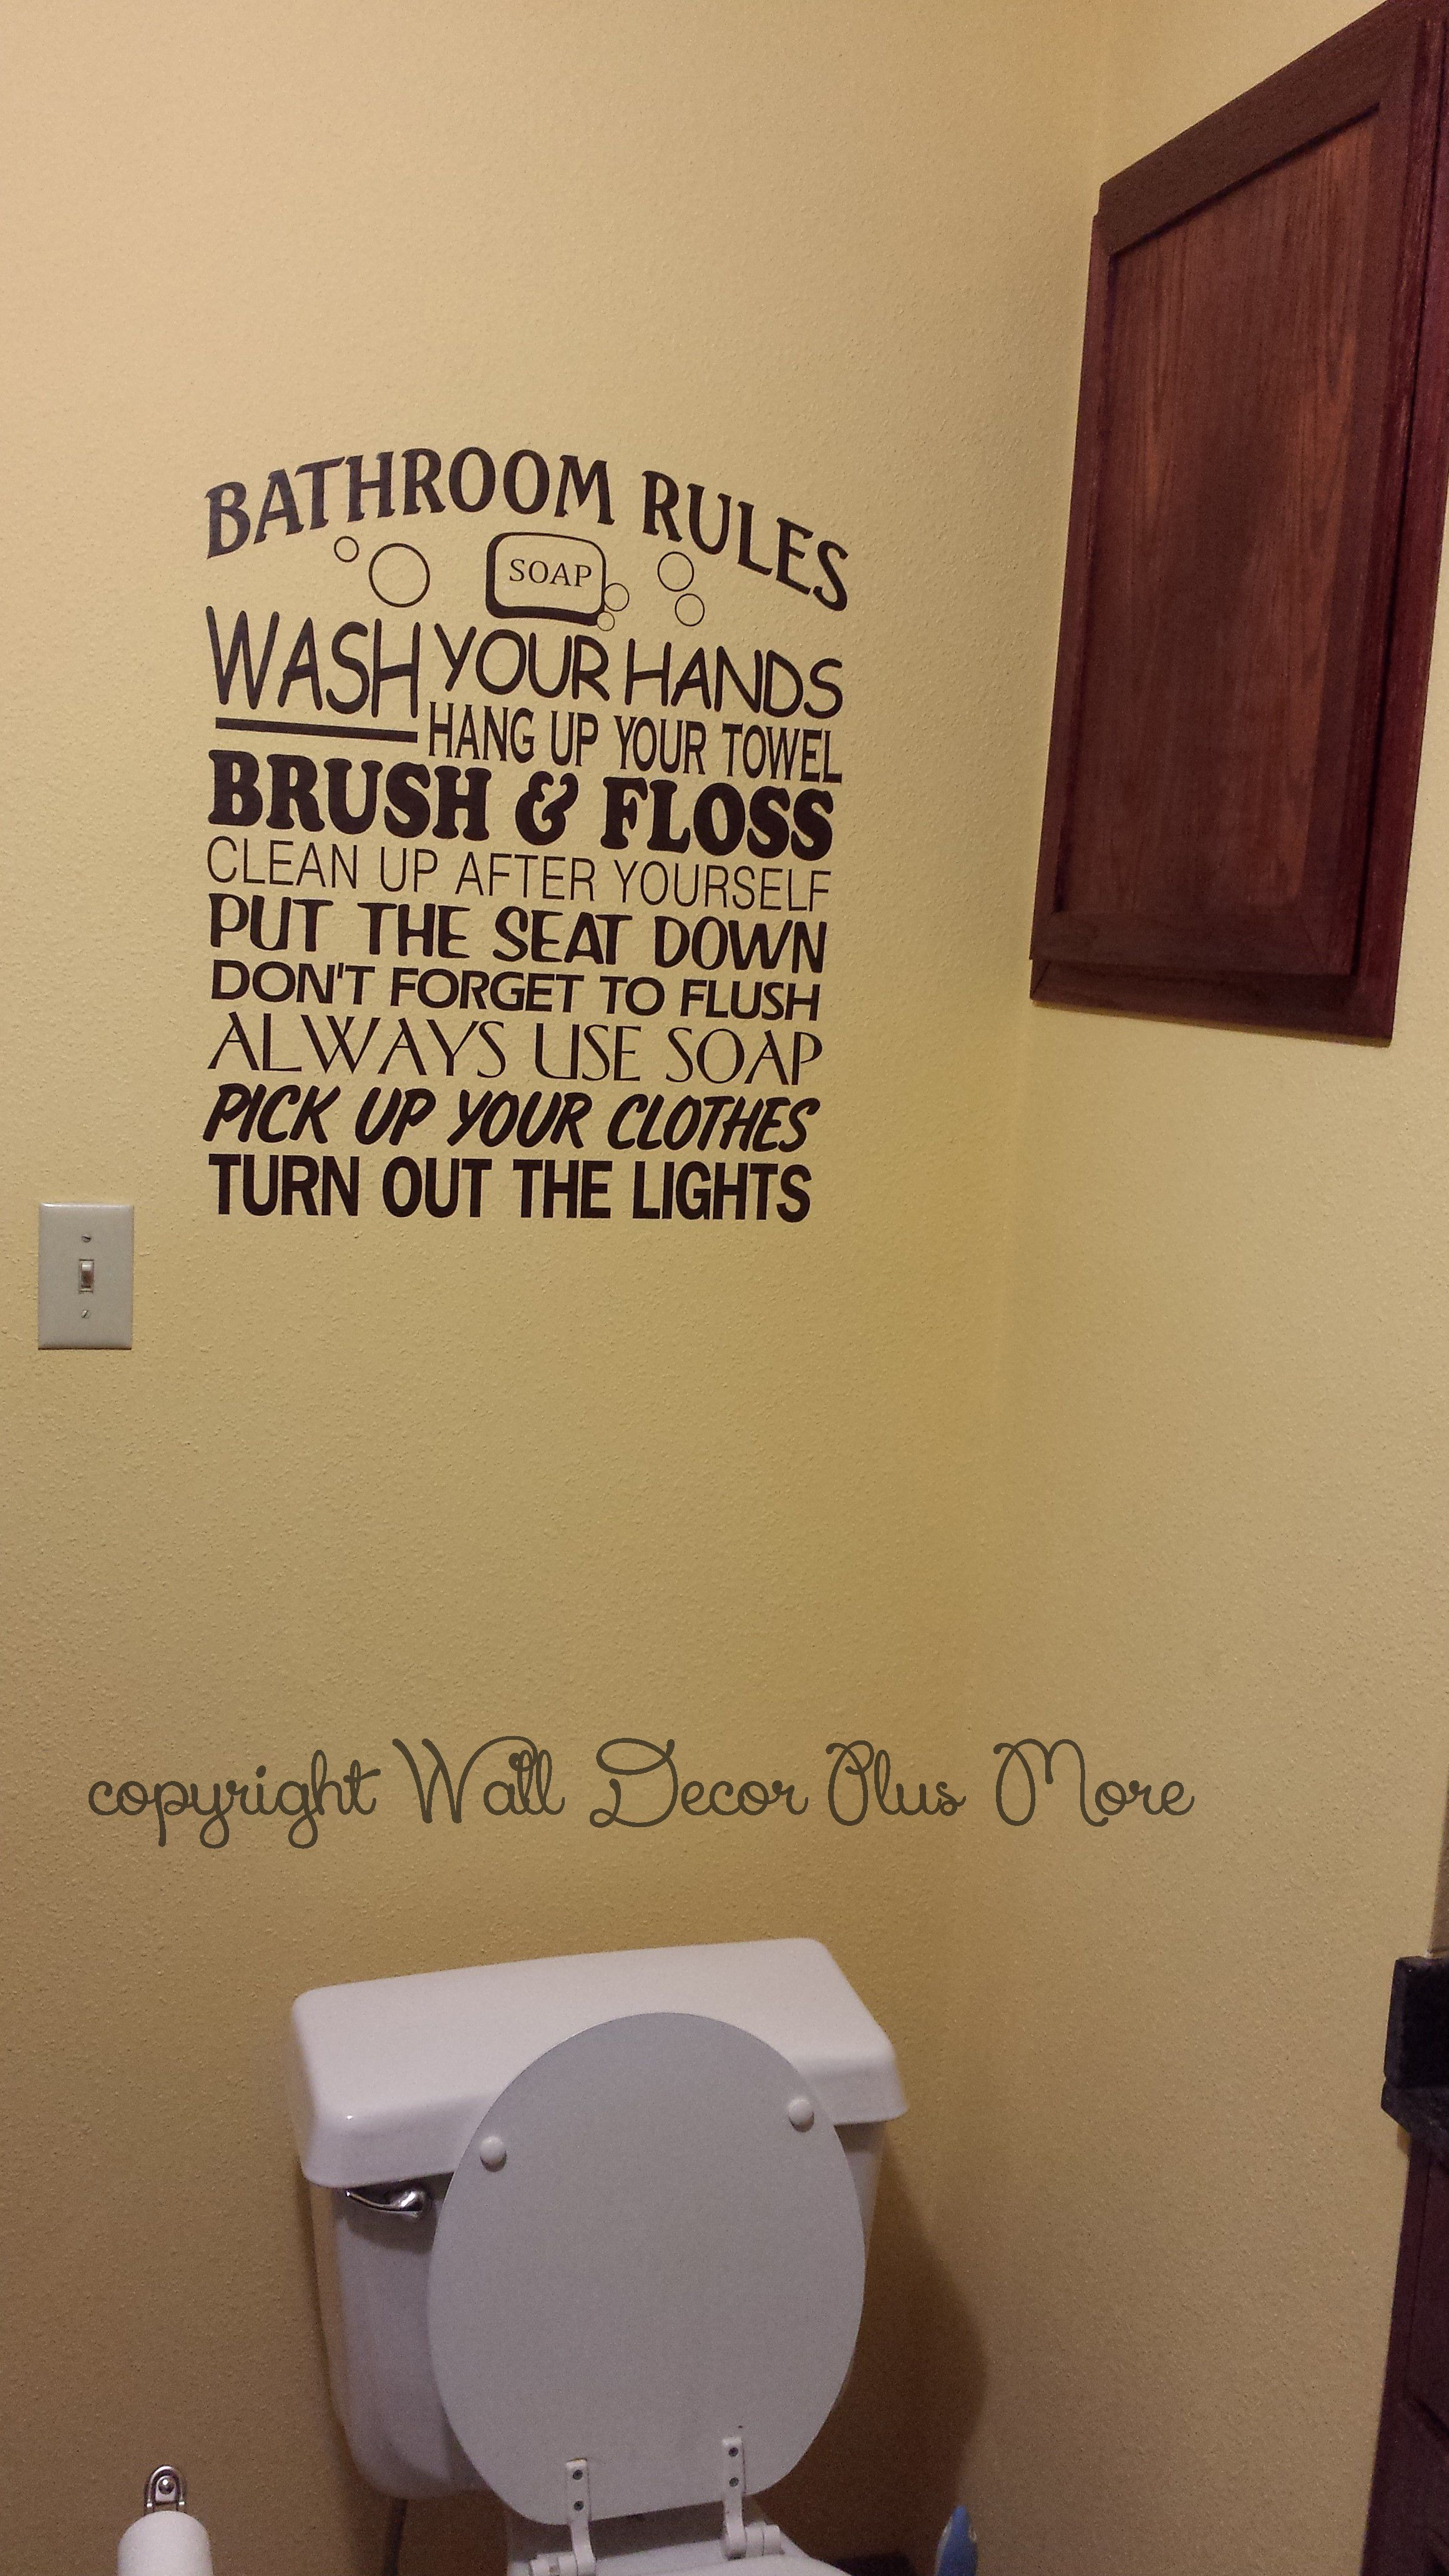 Robinet Salle De Bain Weldom ~ balcony rules subway art phrases and quote wall decal stickers for